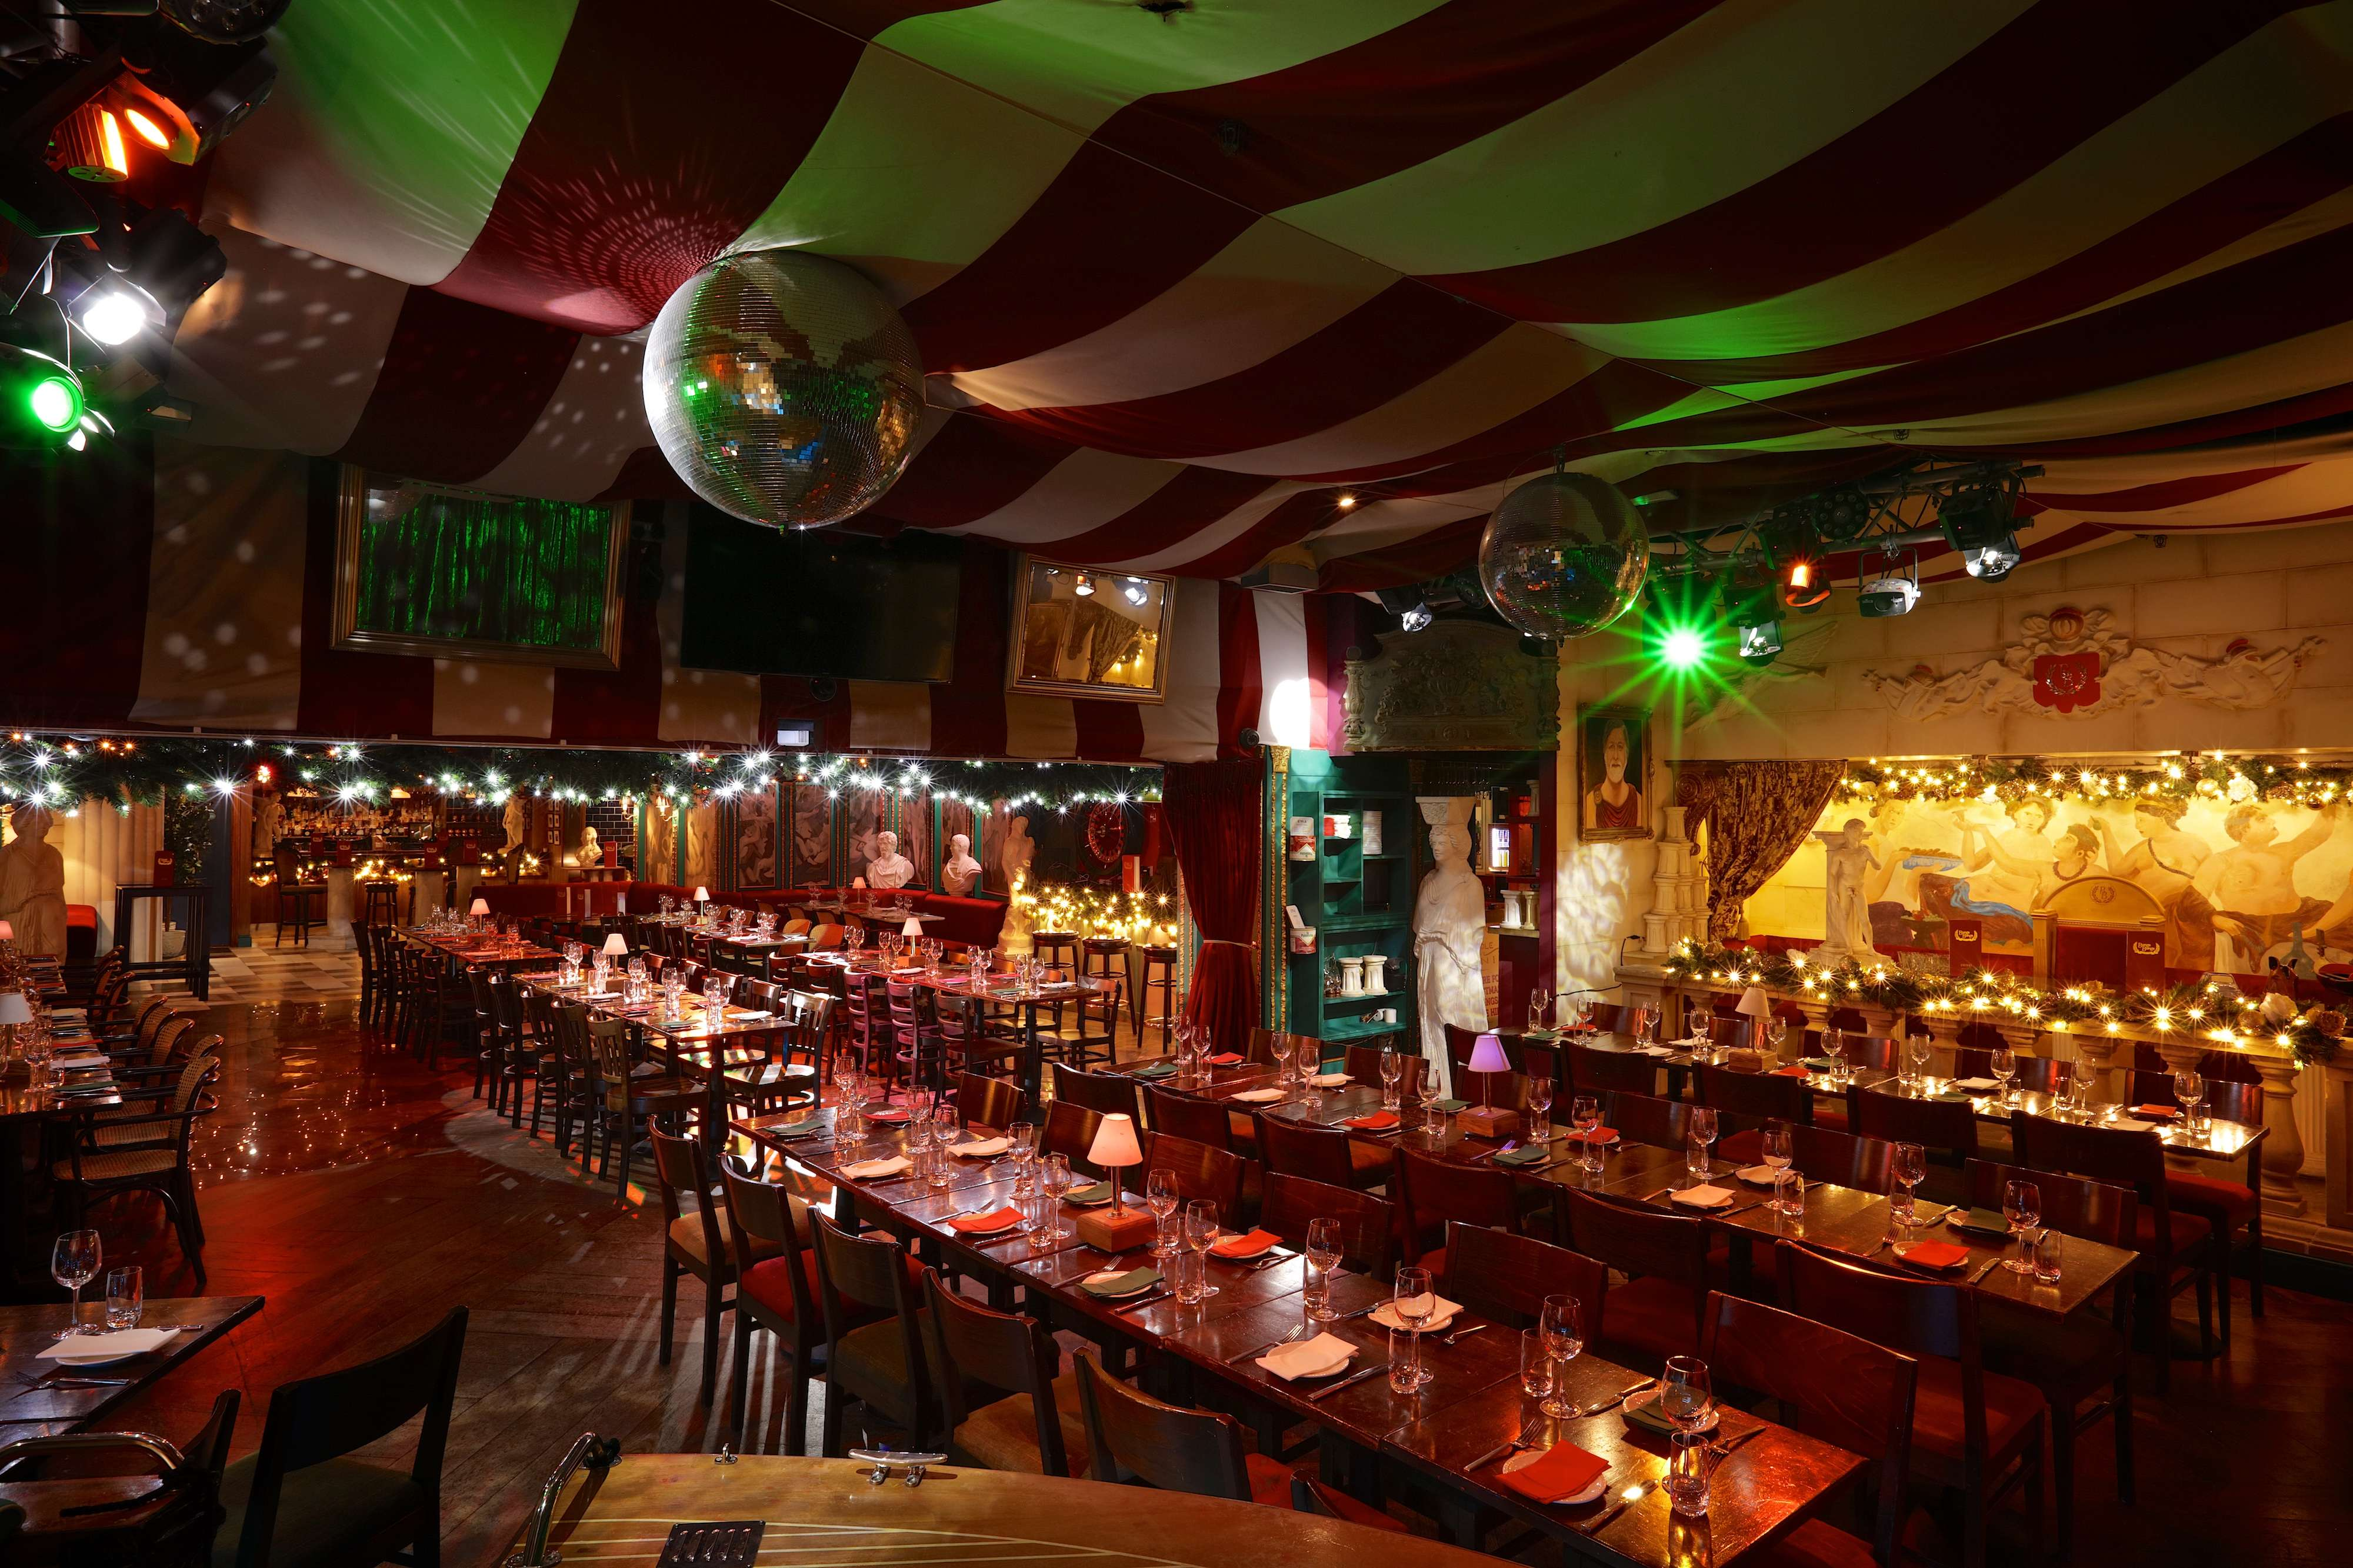 Restaurants In St Cloud Mn Open On Christmas Day 2020 Bars Covent Garden New Years Eve | Bceemm.newyear2020.site